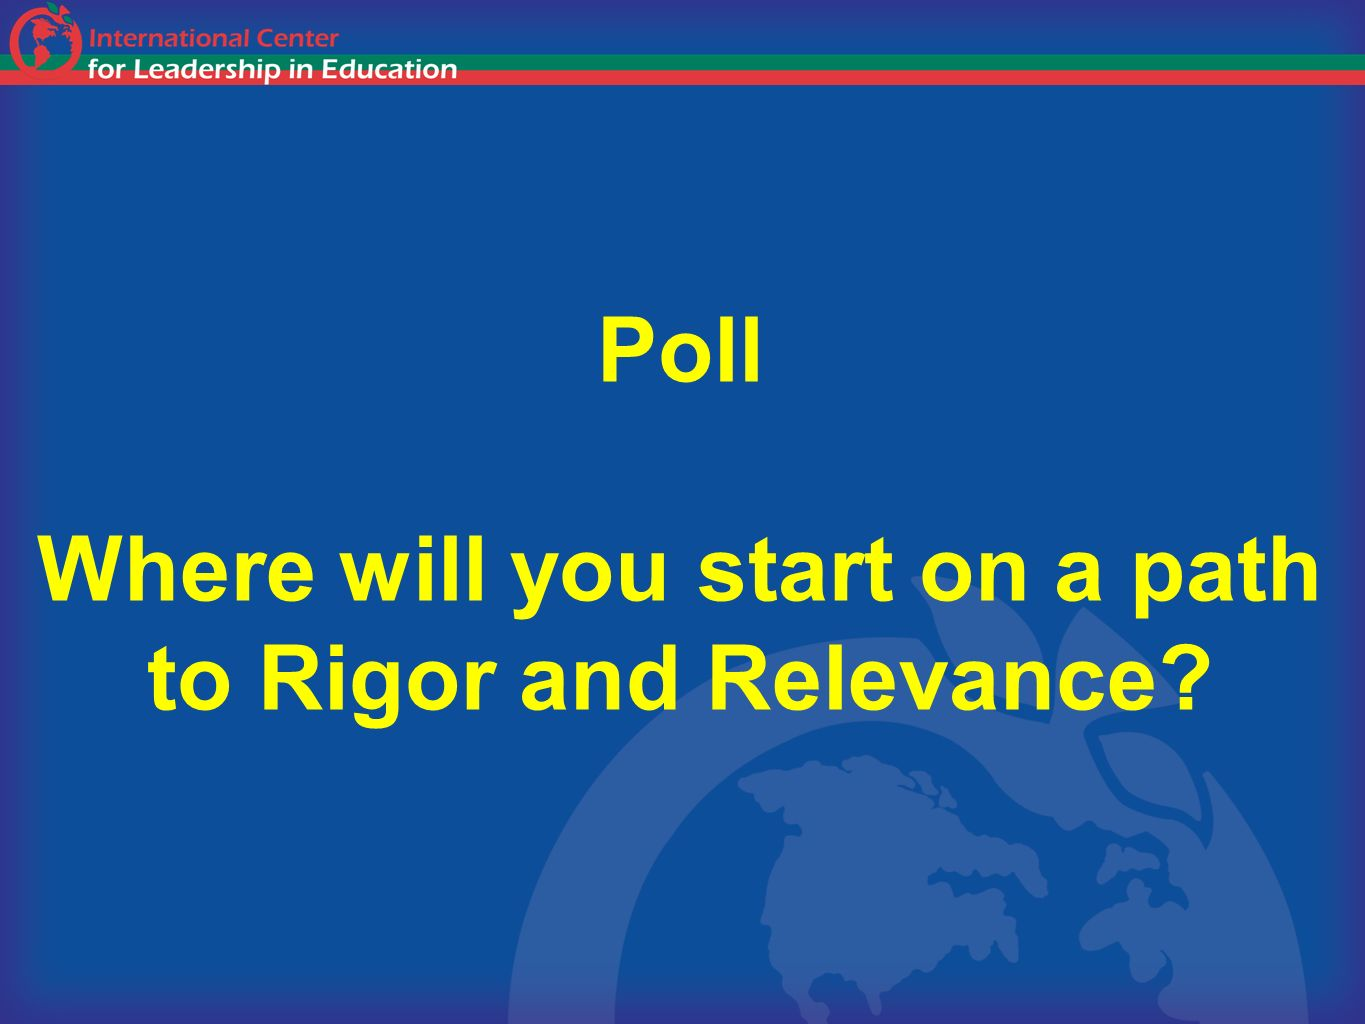 Poll Where will you start on a path to Rigor and Relevance